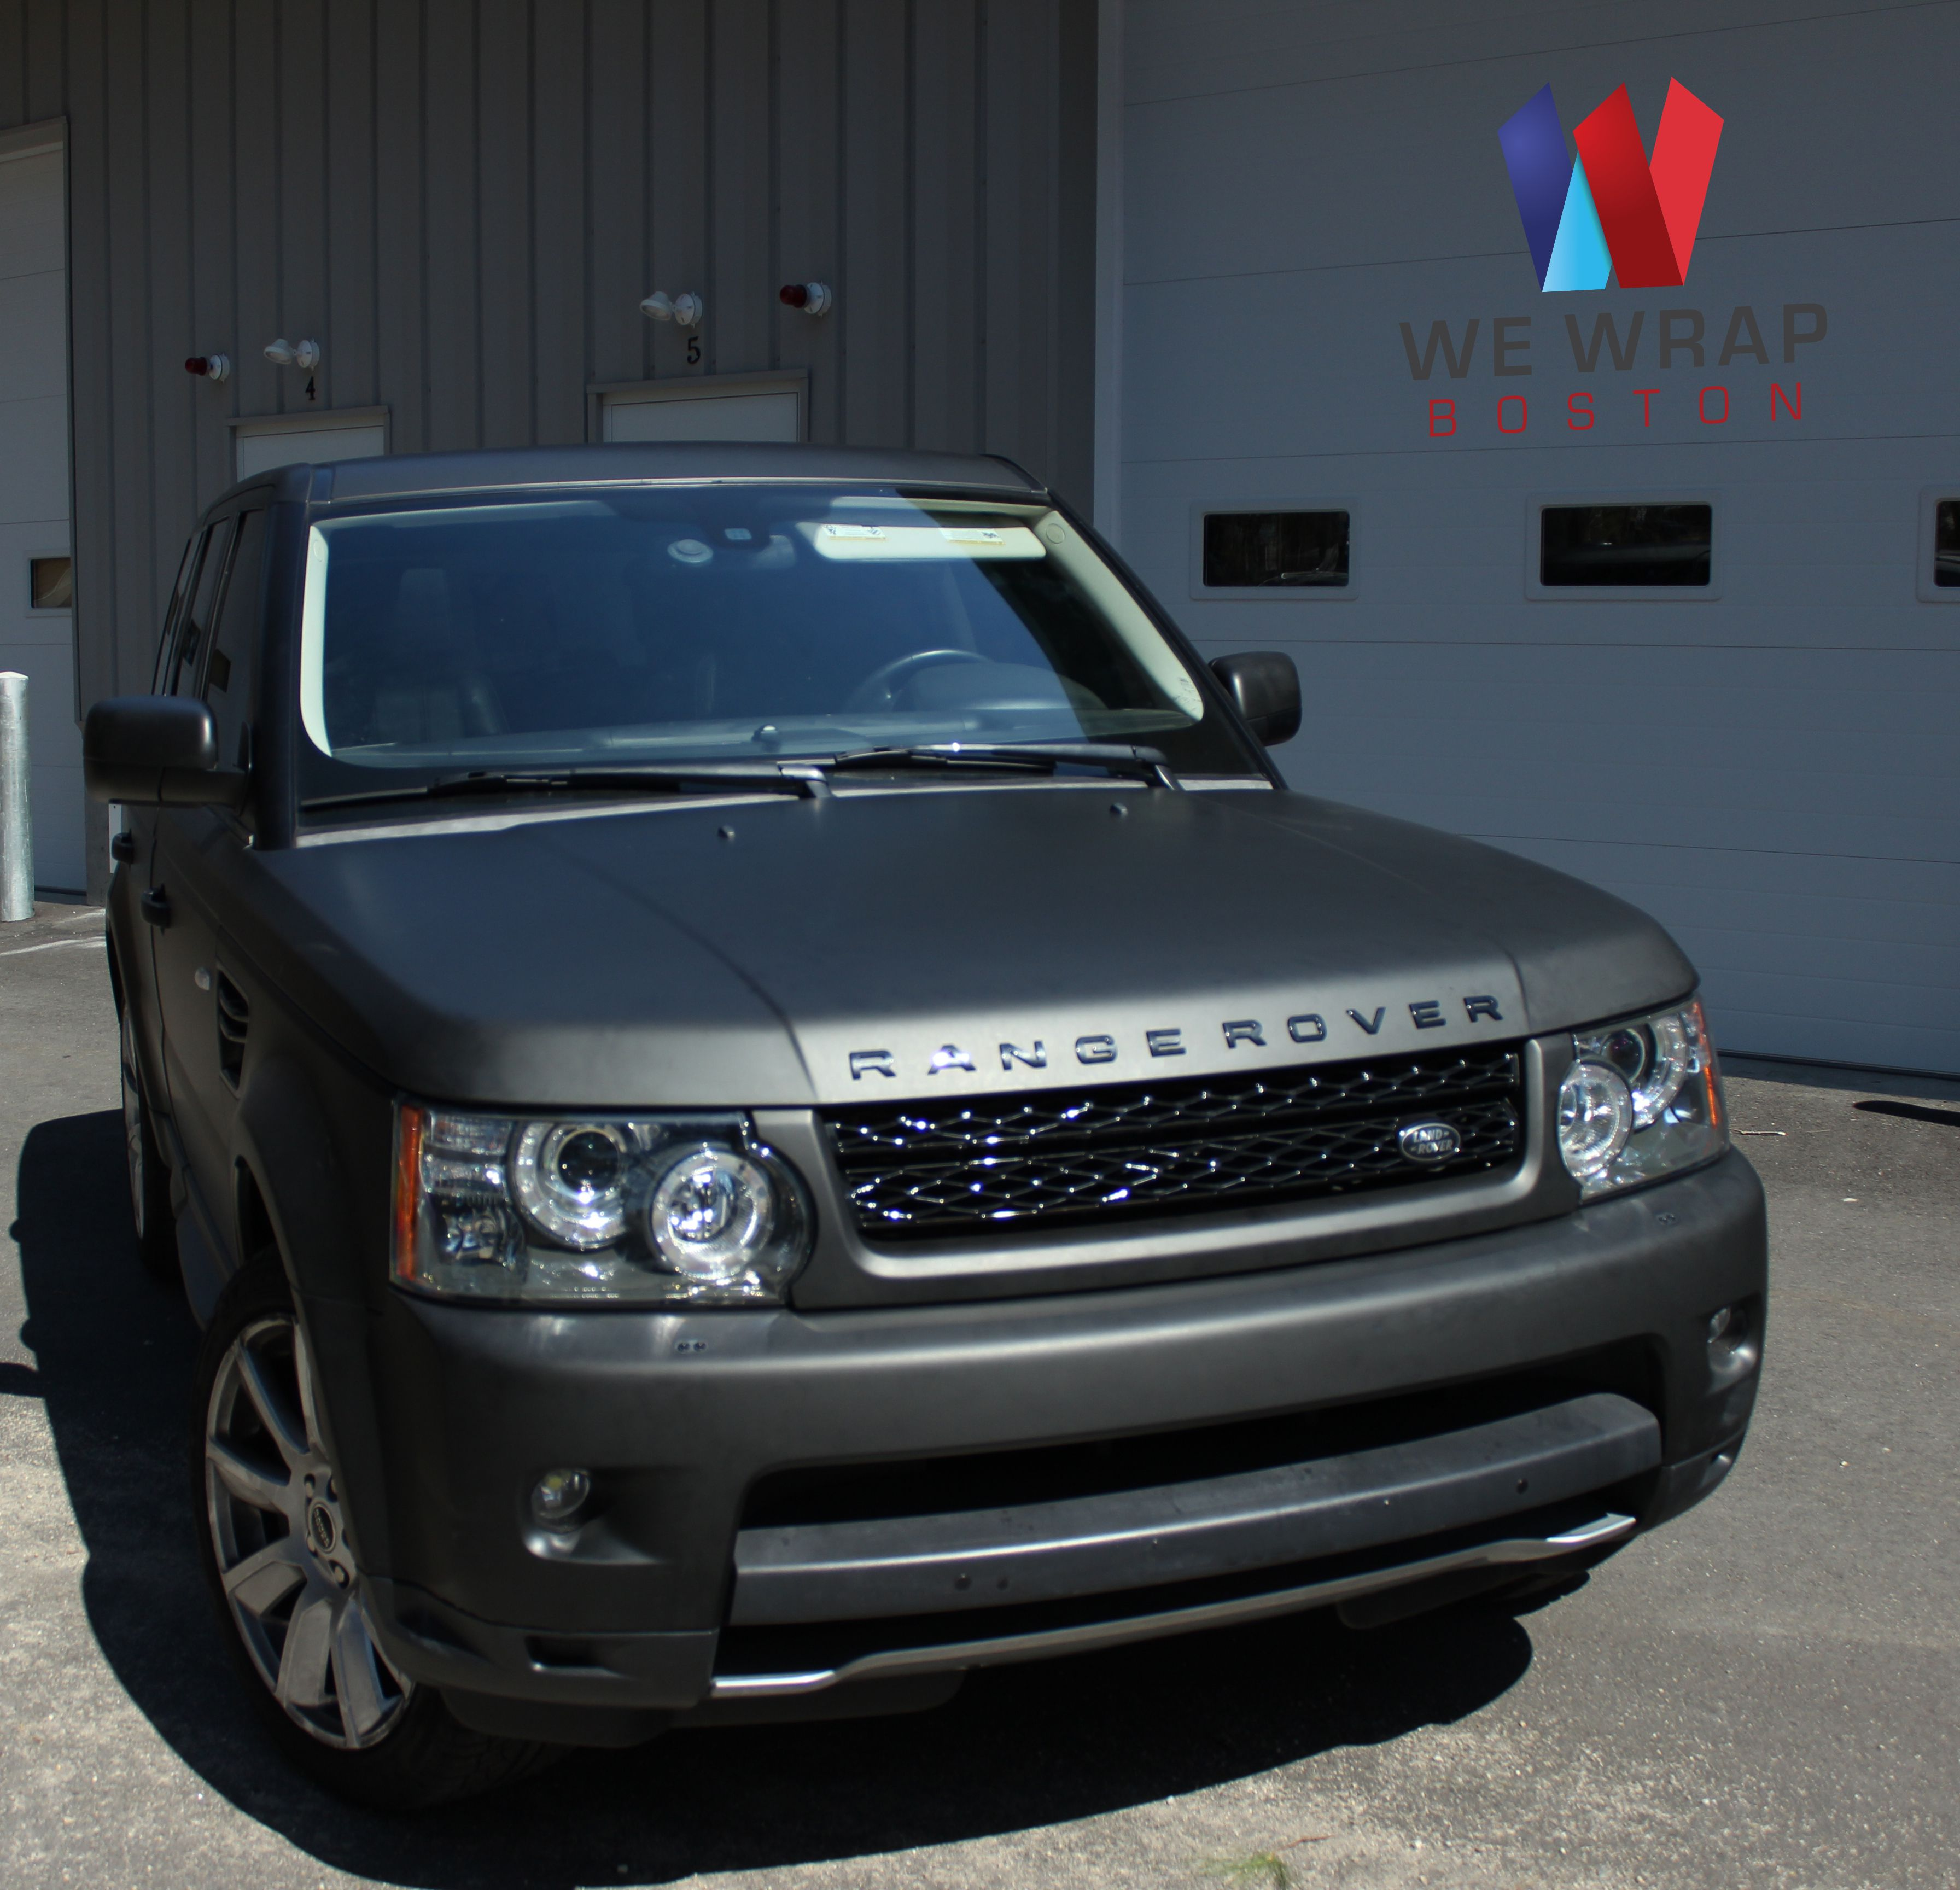 We ve got a matte black range rover on xo luxury wheels for you next like the look see more great rides www youlikecars co uk land rover cars